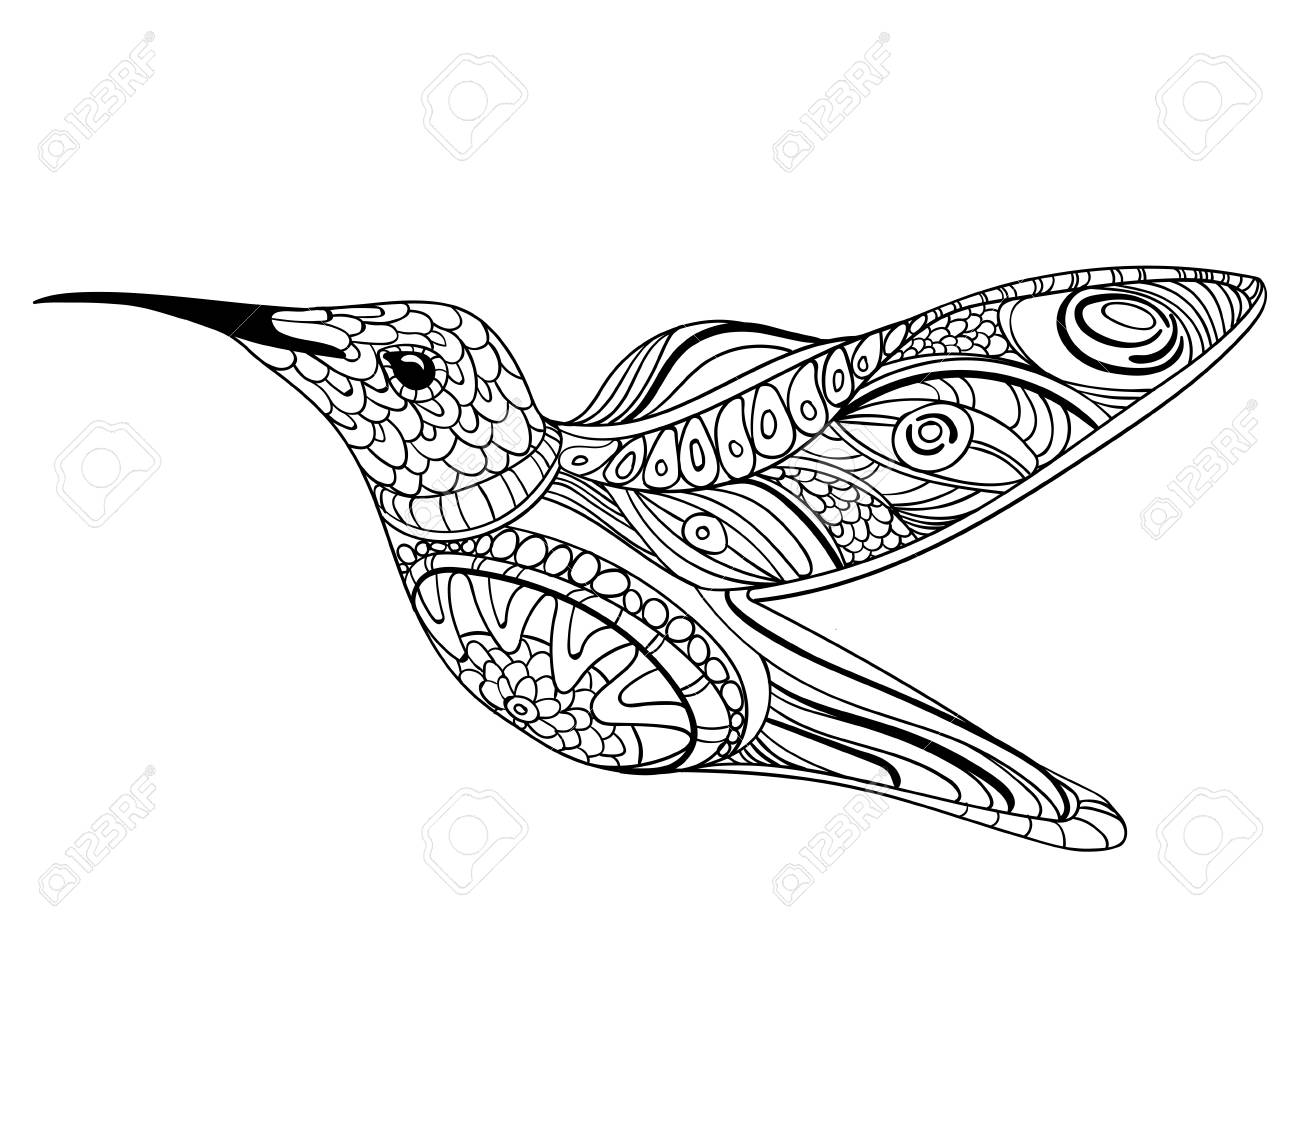 1300x1125 Vector Illustration Of A Hummingbird. Drawing With Ornaments